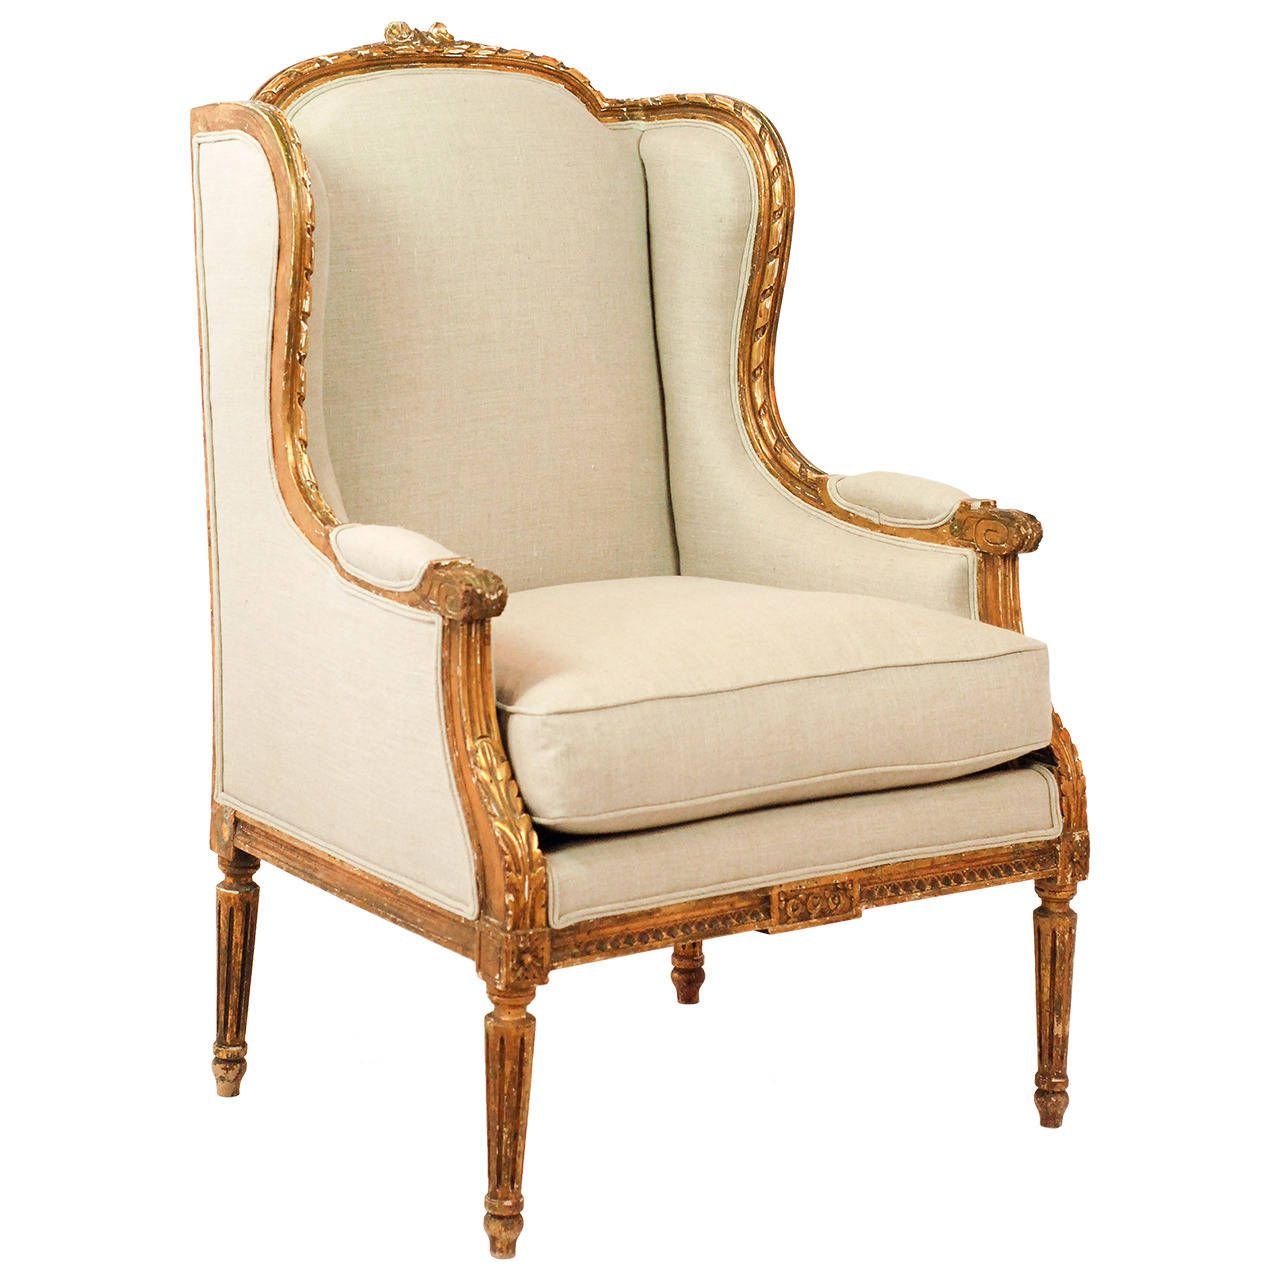 Gilded louis xvi wingback armchair from a unique collection of antique and modern armchairs at